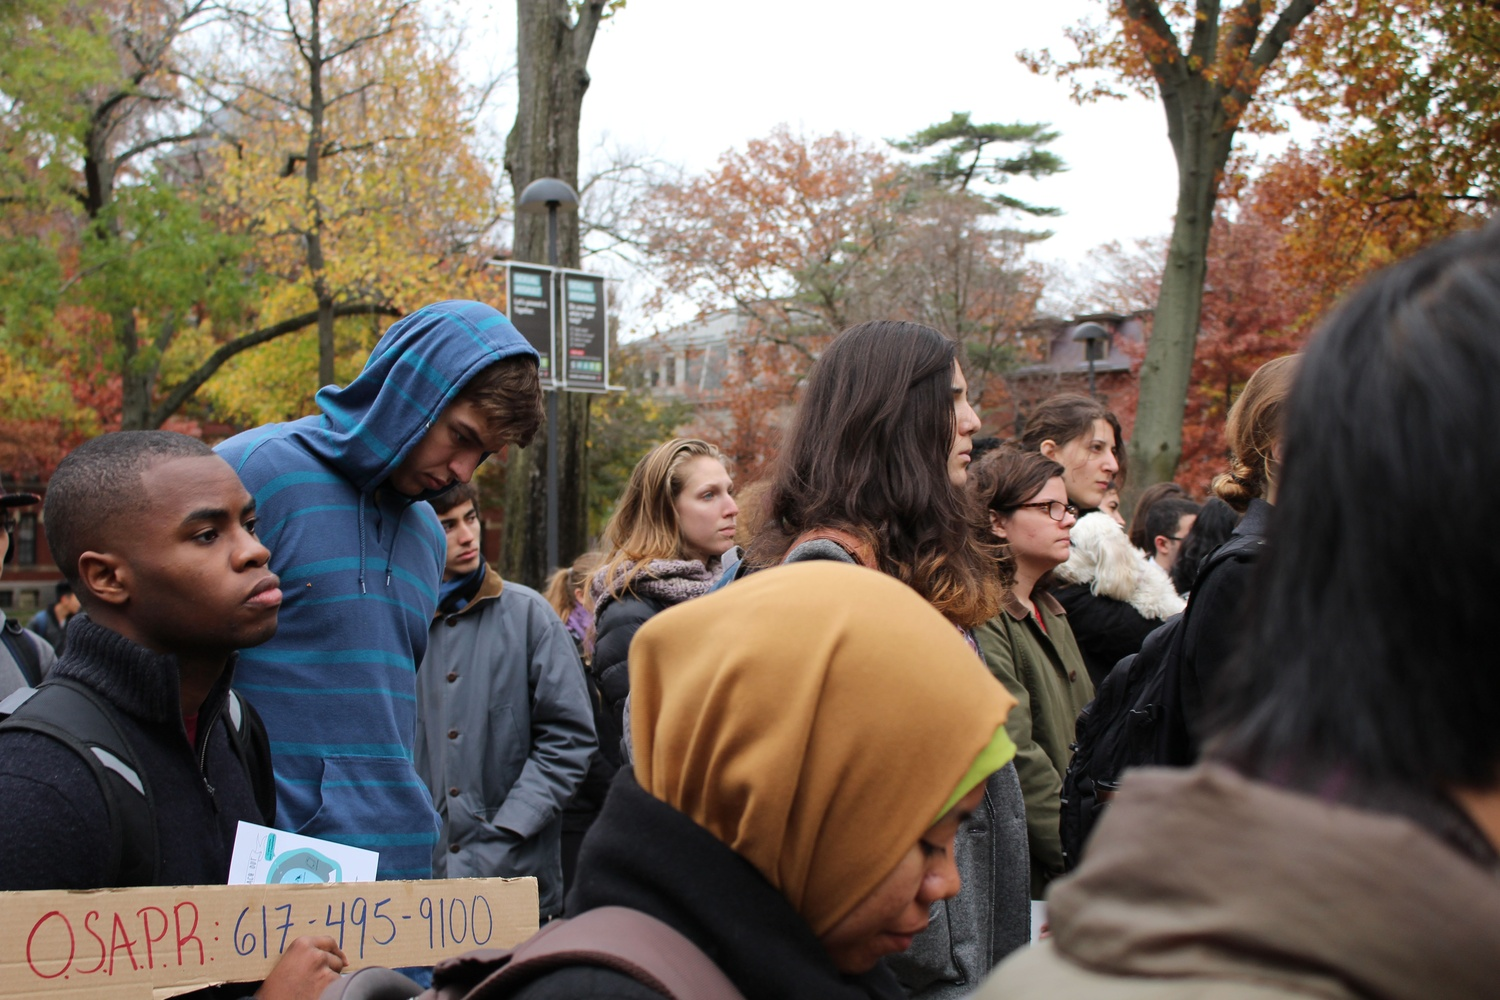 At a rally in the fall, students called on Harvard administrators to allocate more resources to sexual assault prevention.